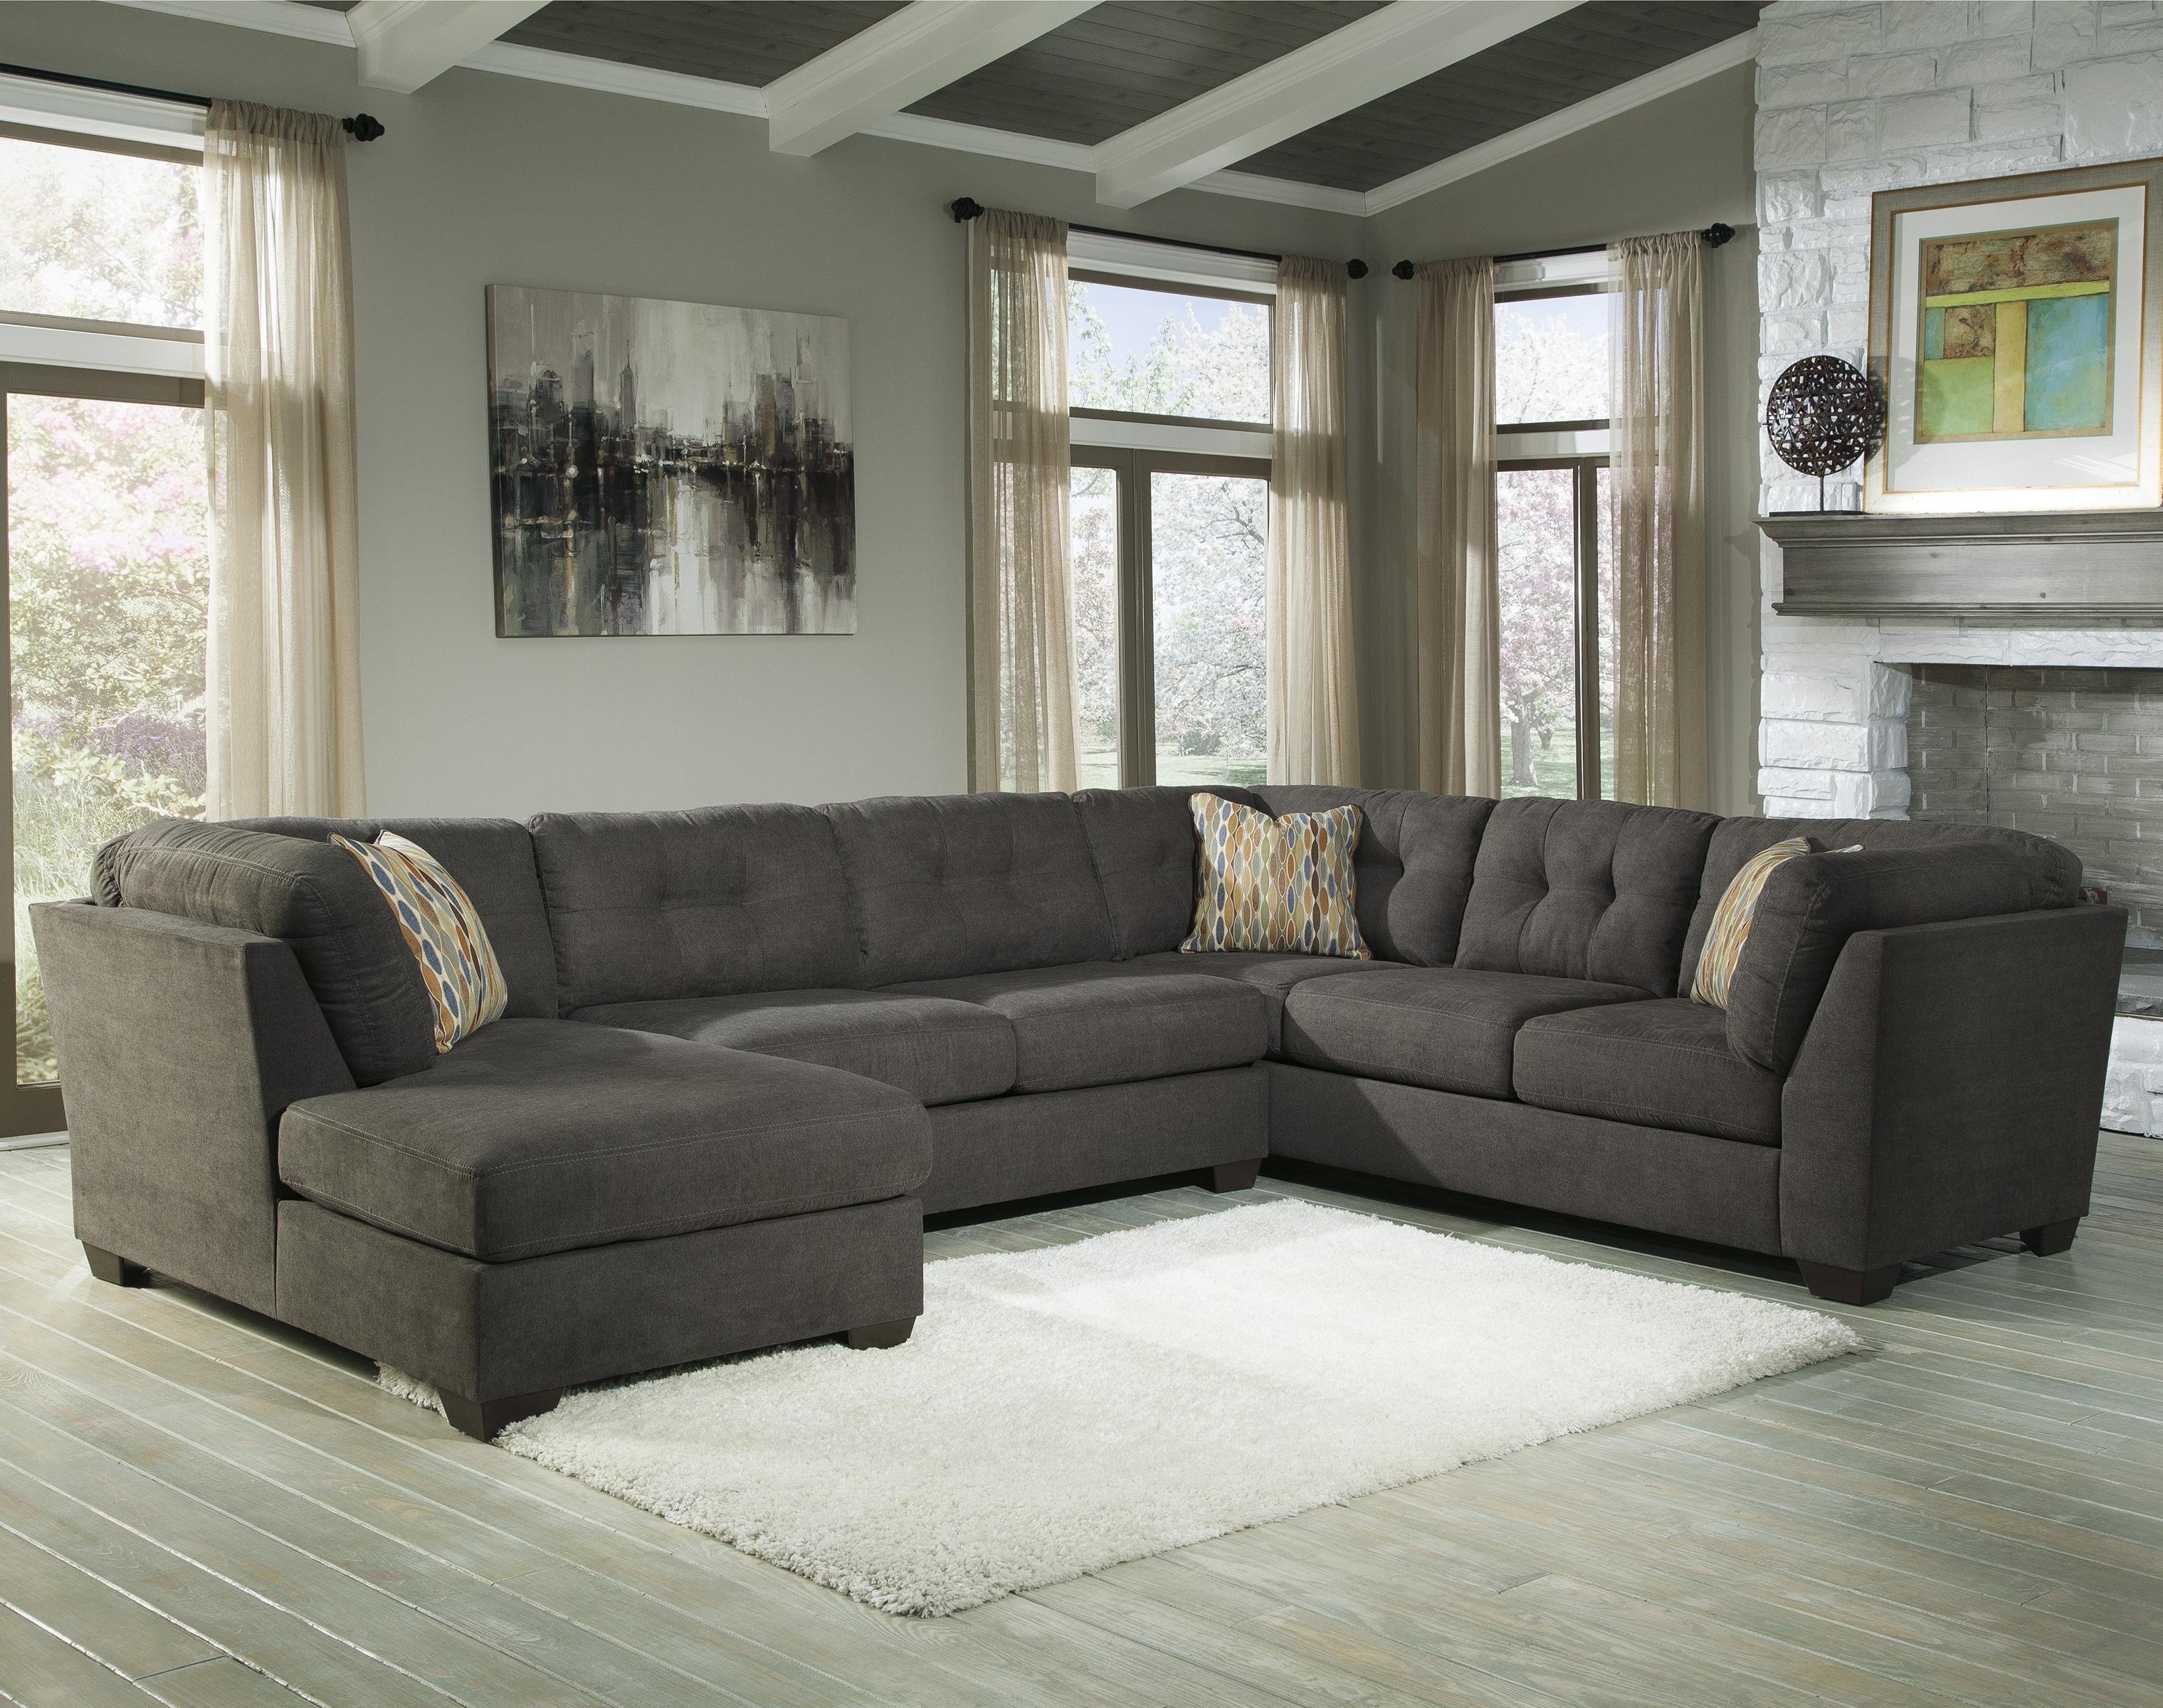 3-Piece Modular Sectional w/ Armless Sleeper u0026 Left Chaise : benchcraft sectional - Sectionals, Sofas & Couches